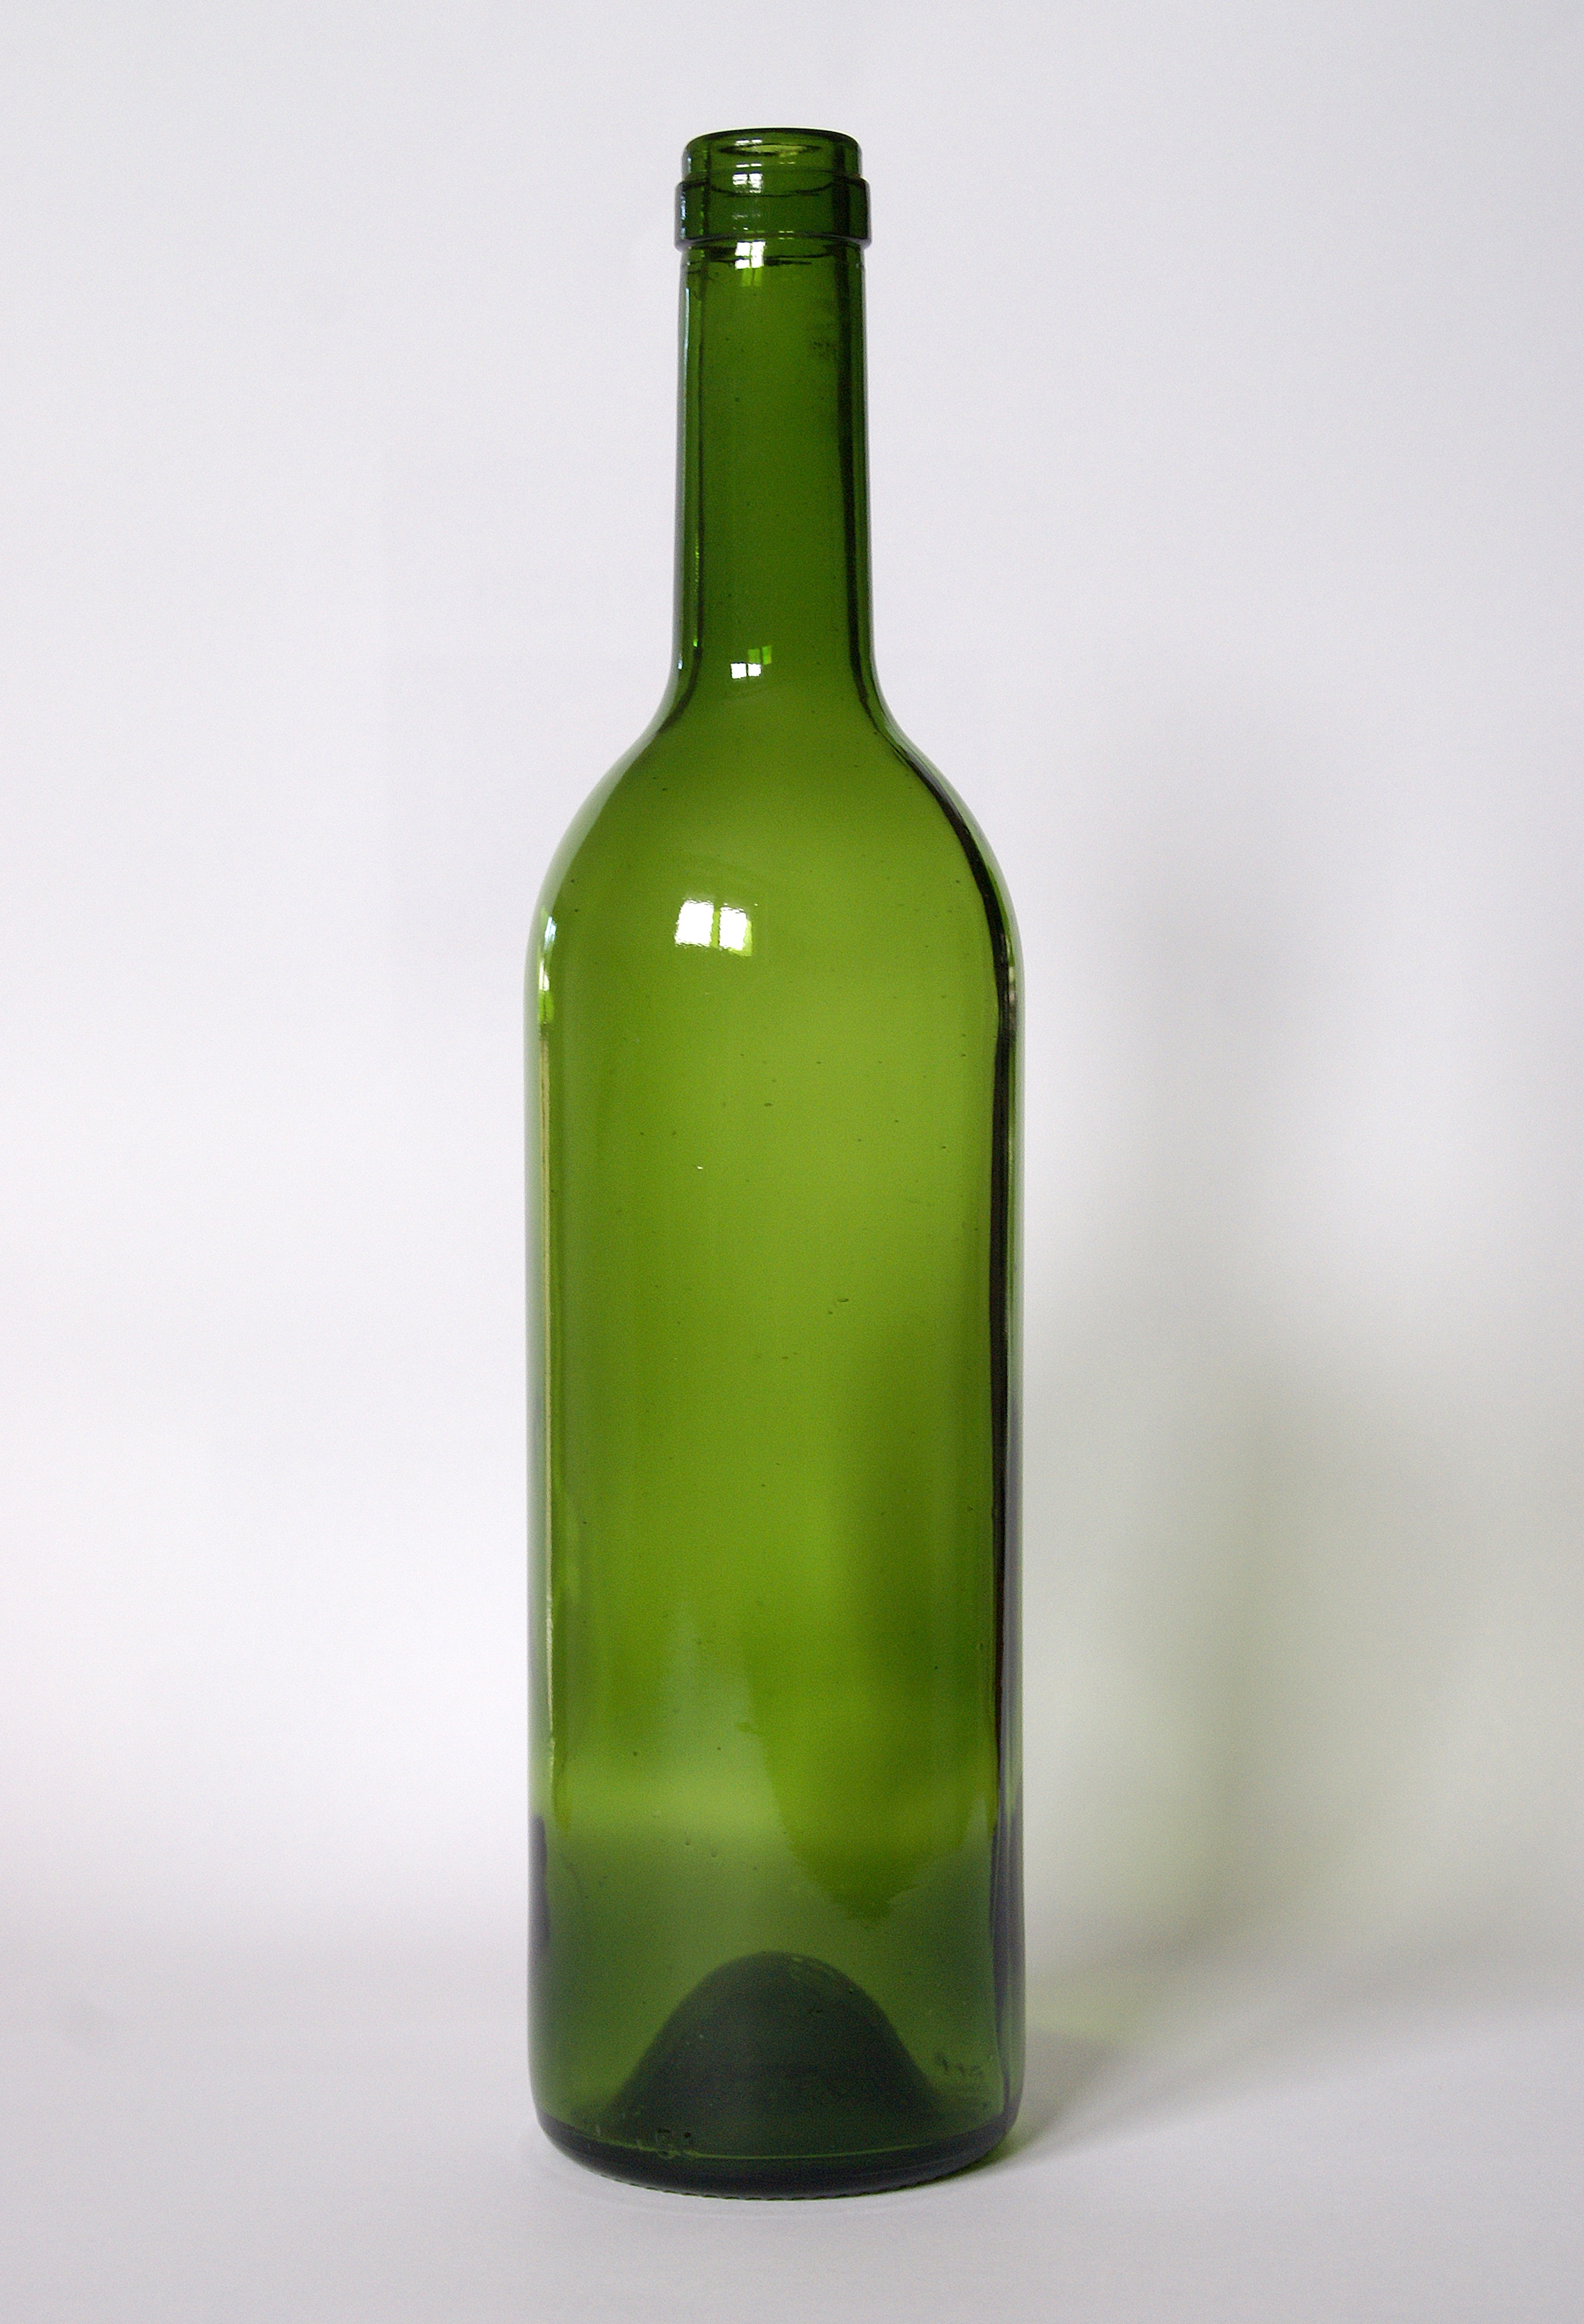 http://upload.wikimedia.org/wikipedia/commons/1/16/Empty_Wine_bottle.jpg